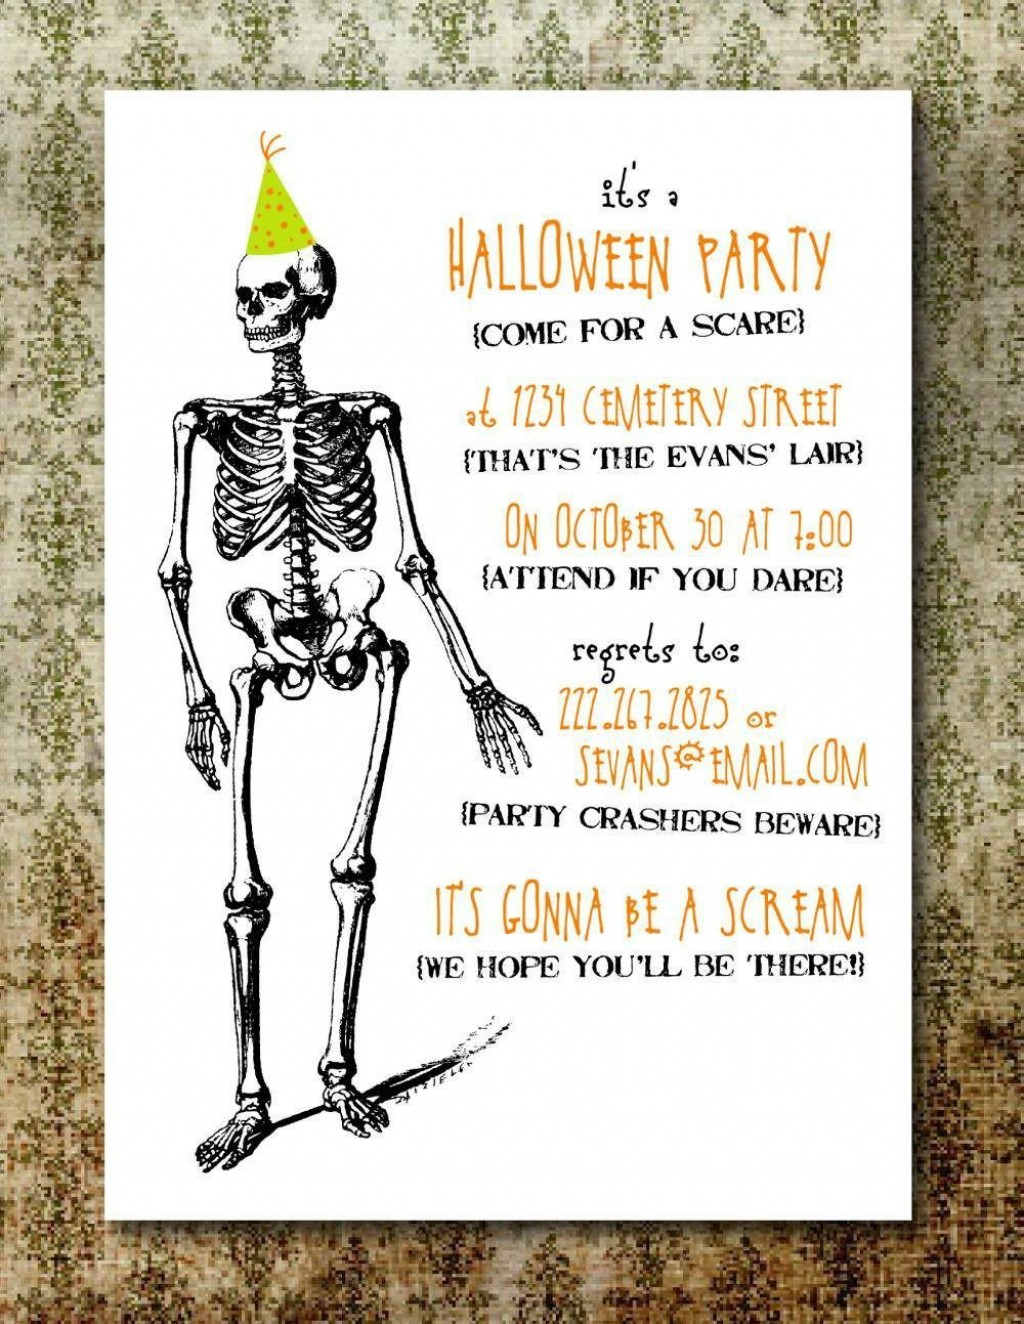 004 Archaicawful Halloween Party Invitation Template High Definition  Templates Scary SpookyLarge